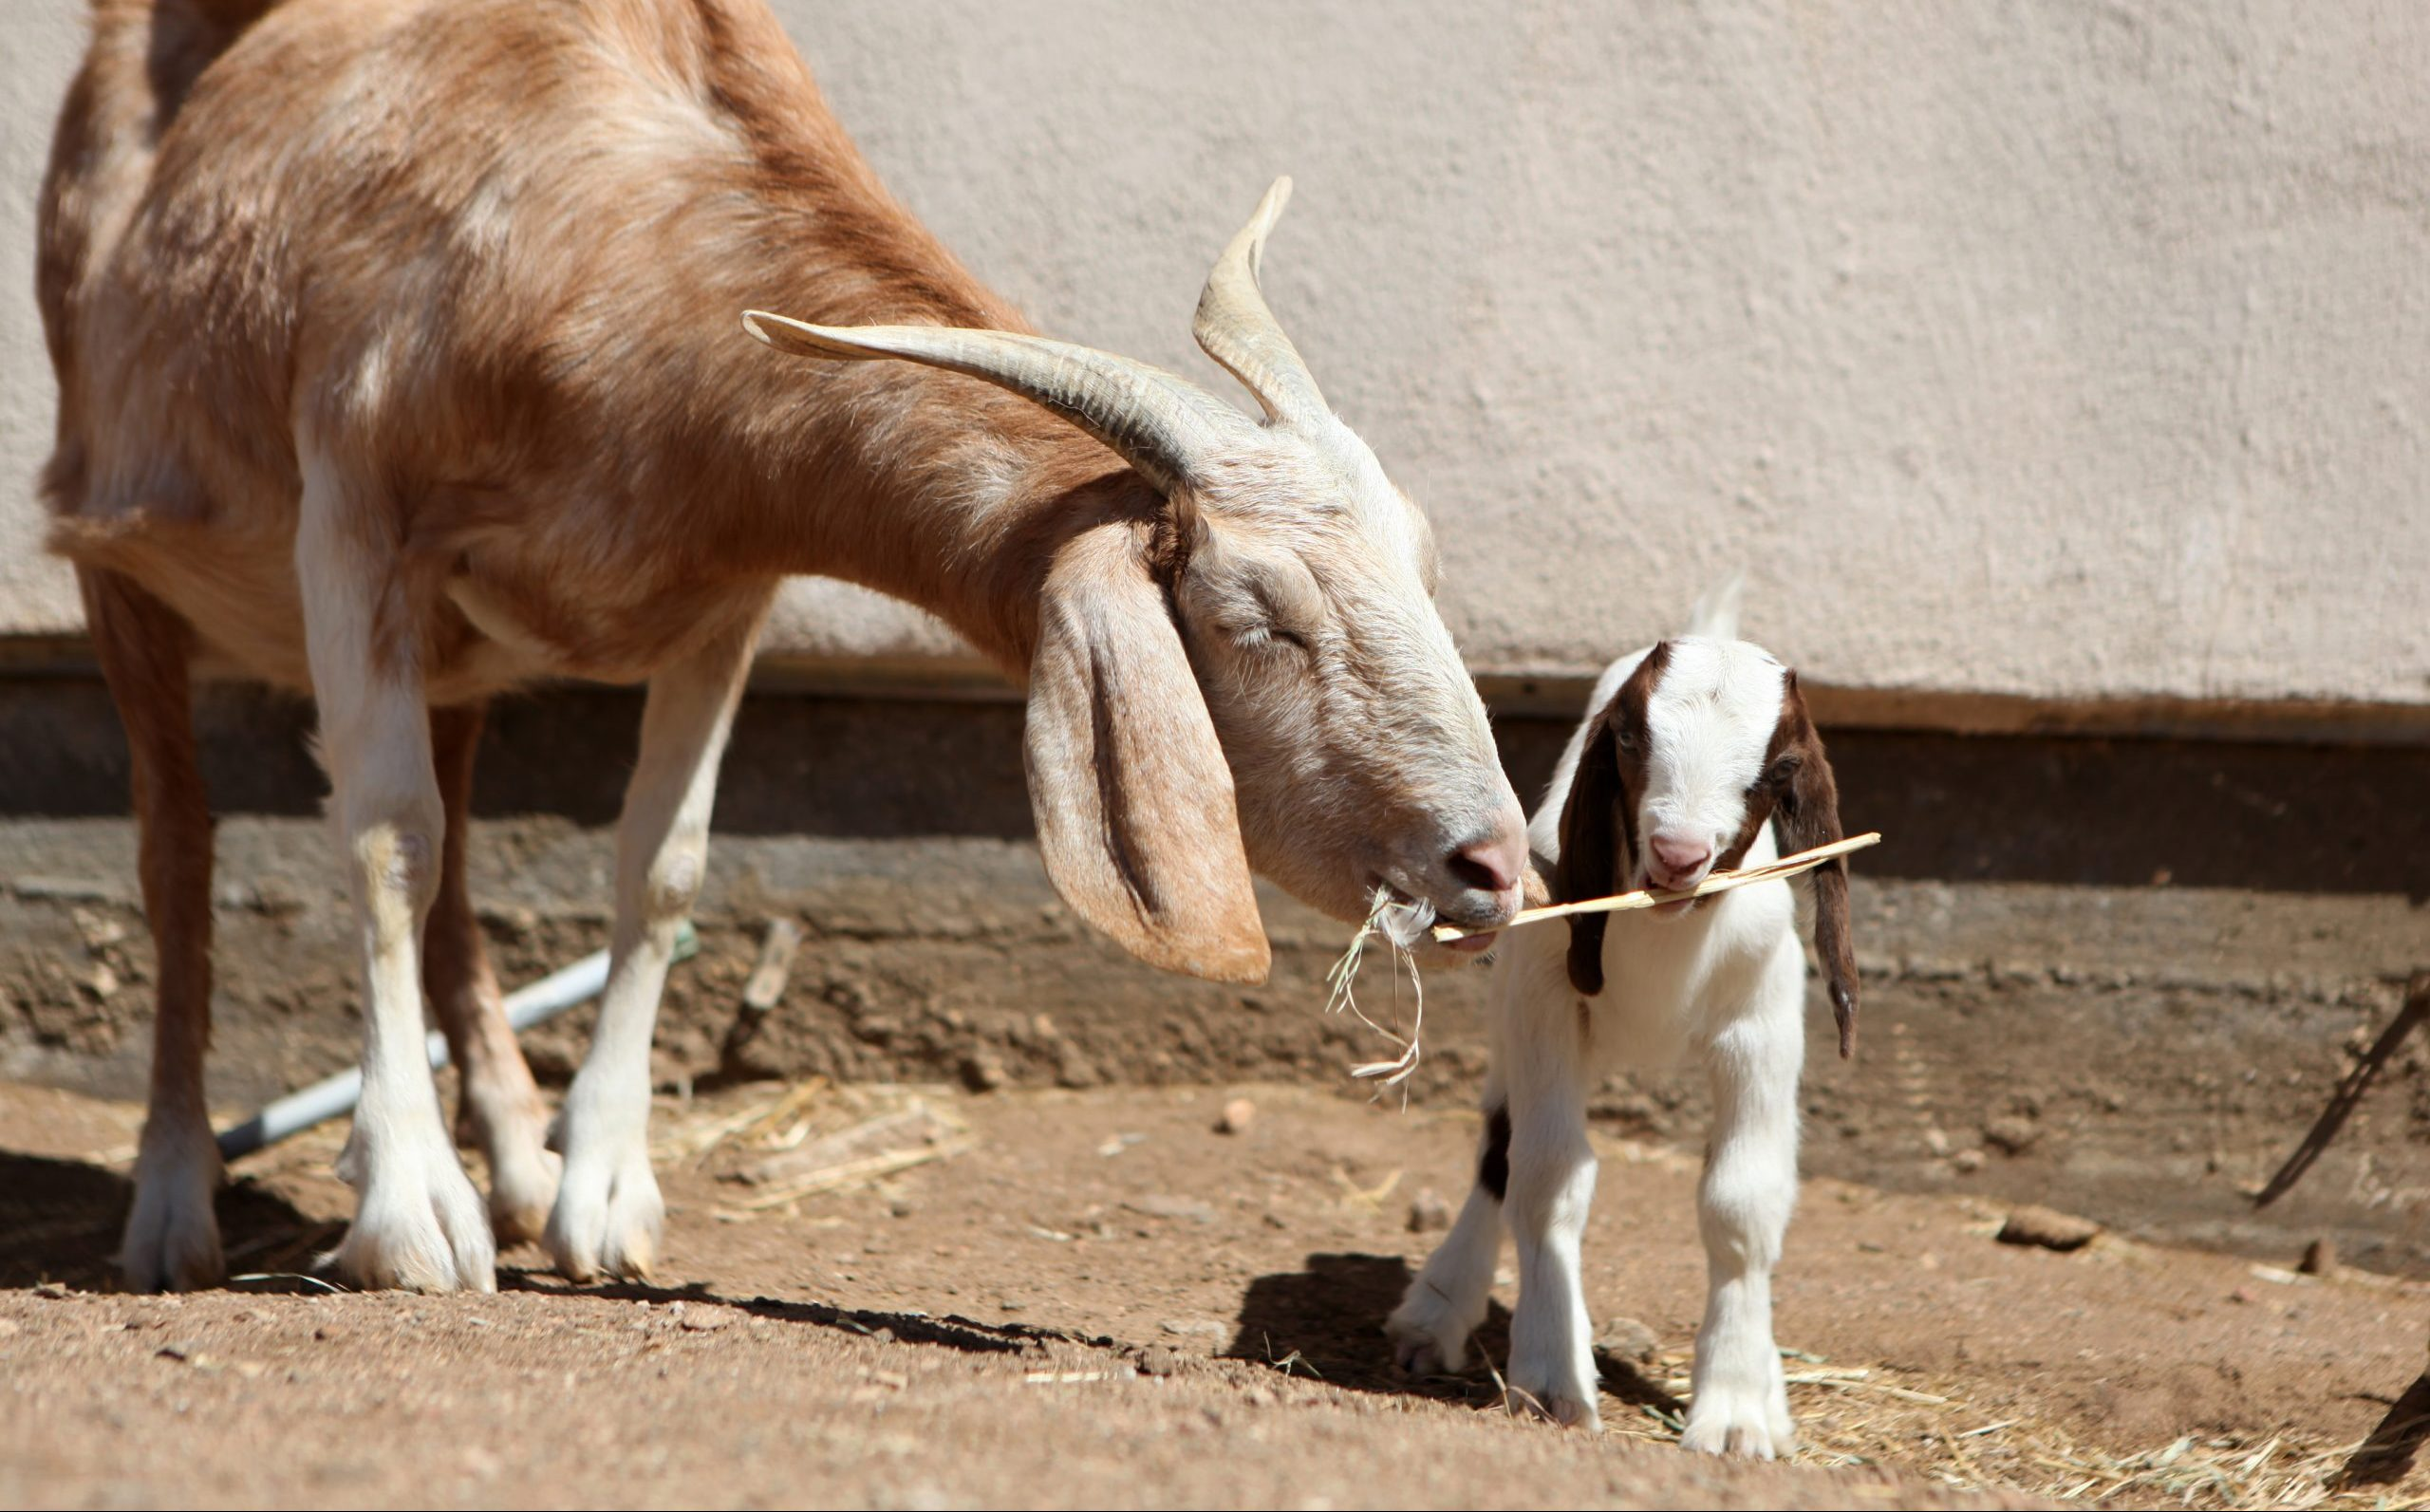 Claire and Erika goats at Farm Sanctuary's Southern California shelter